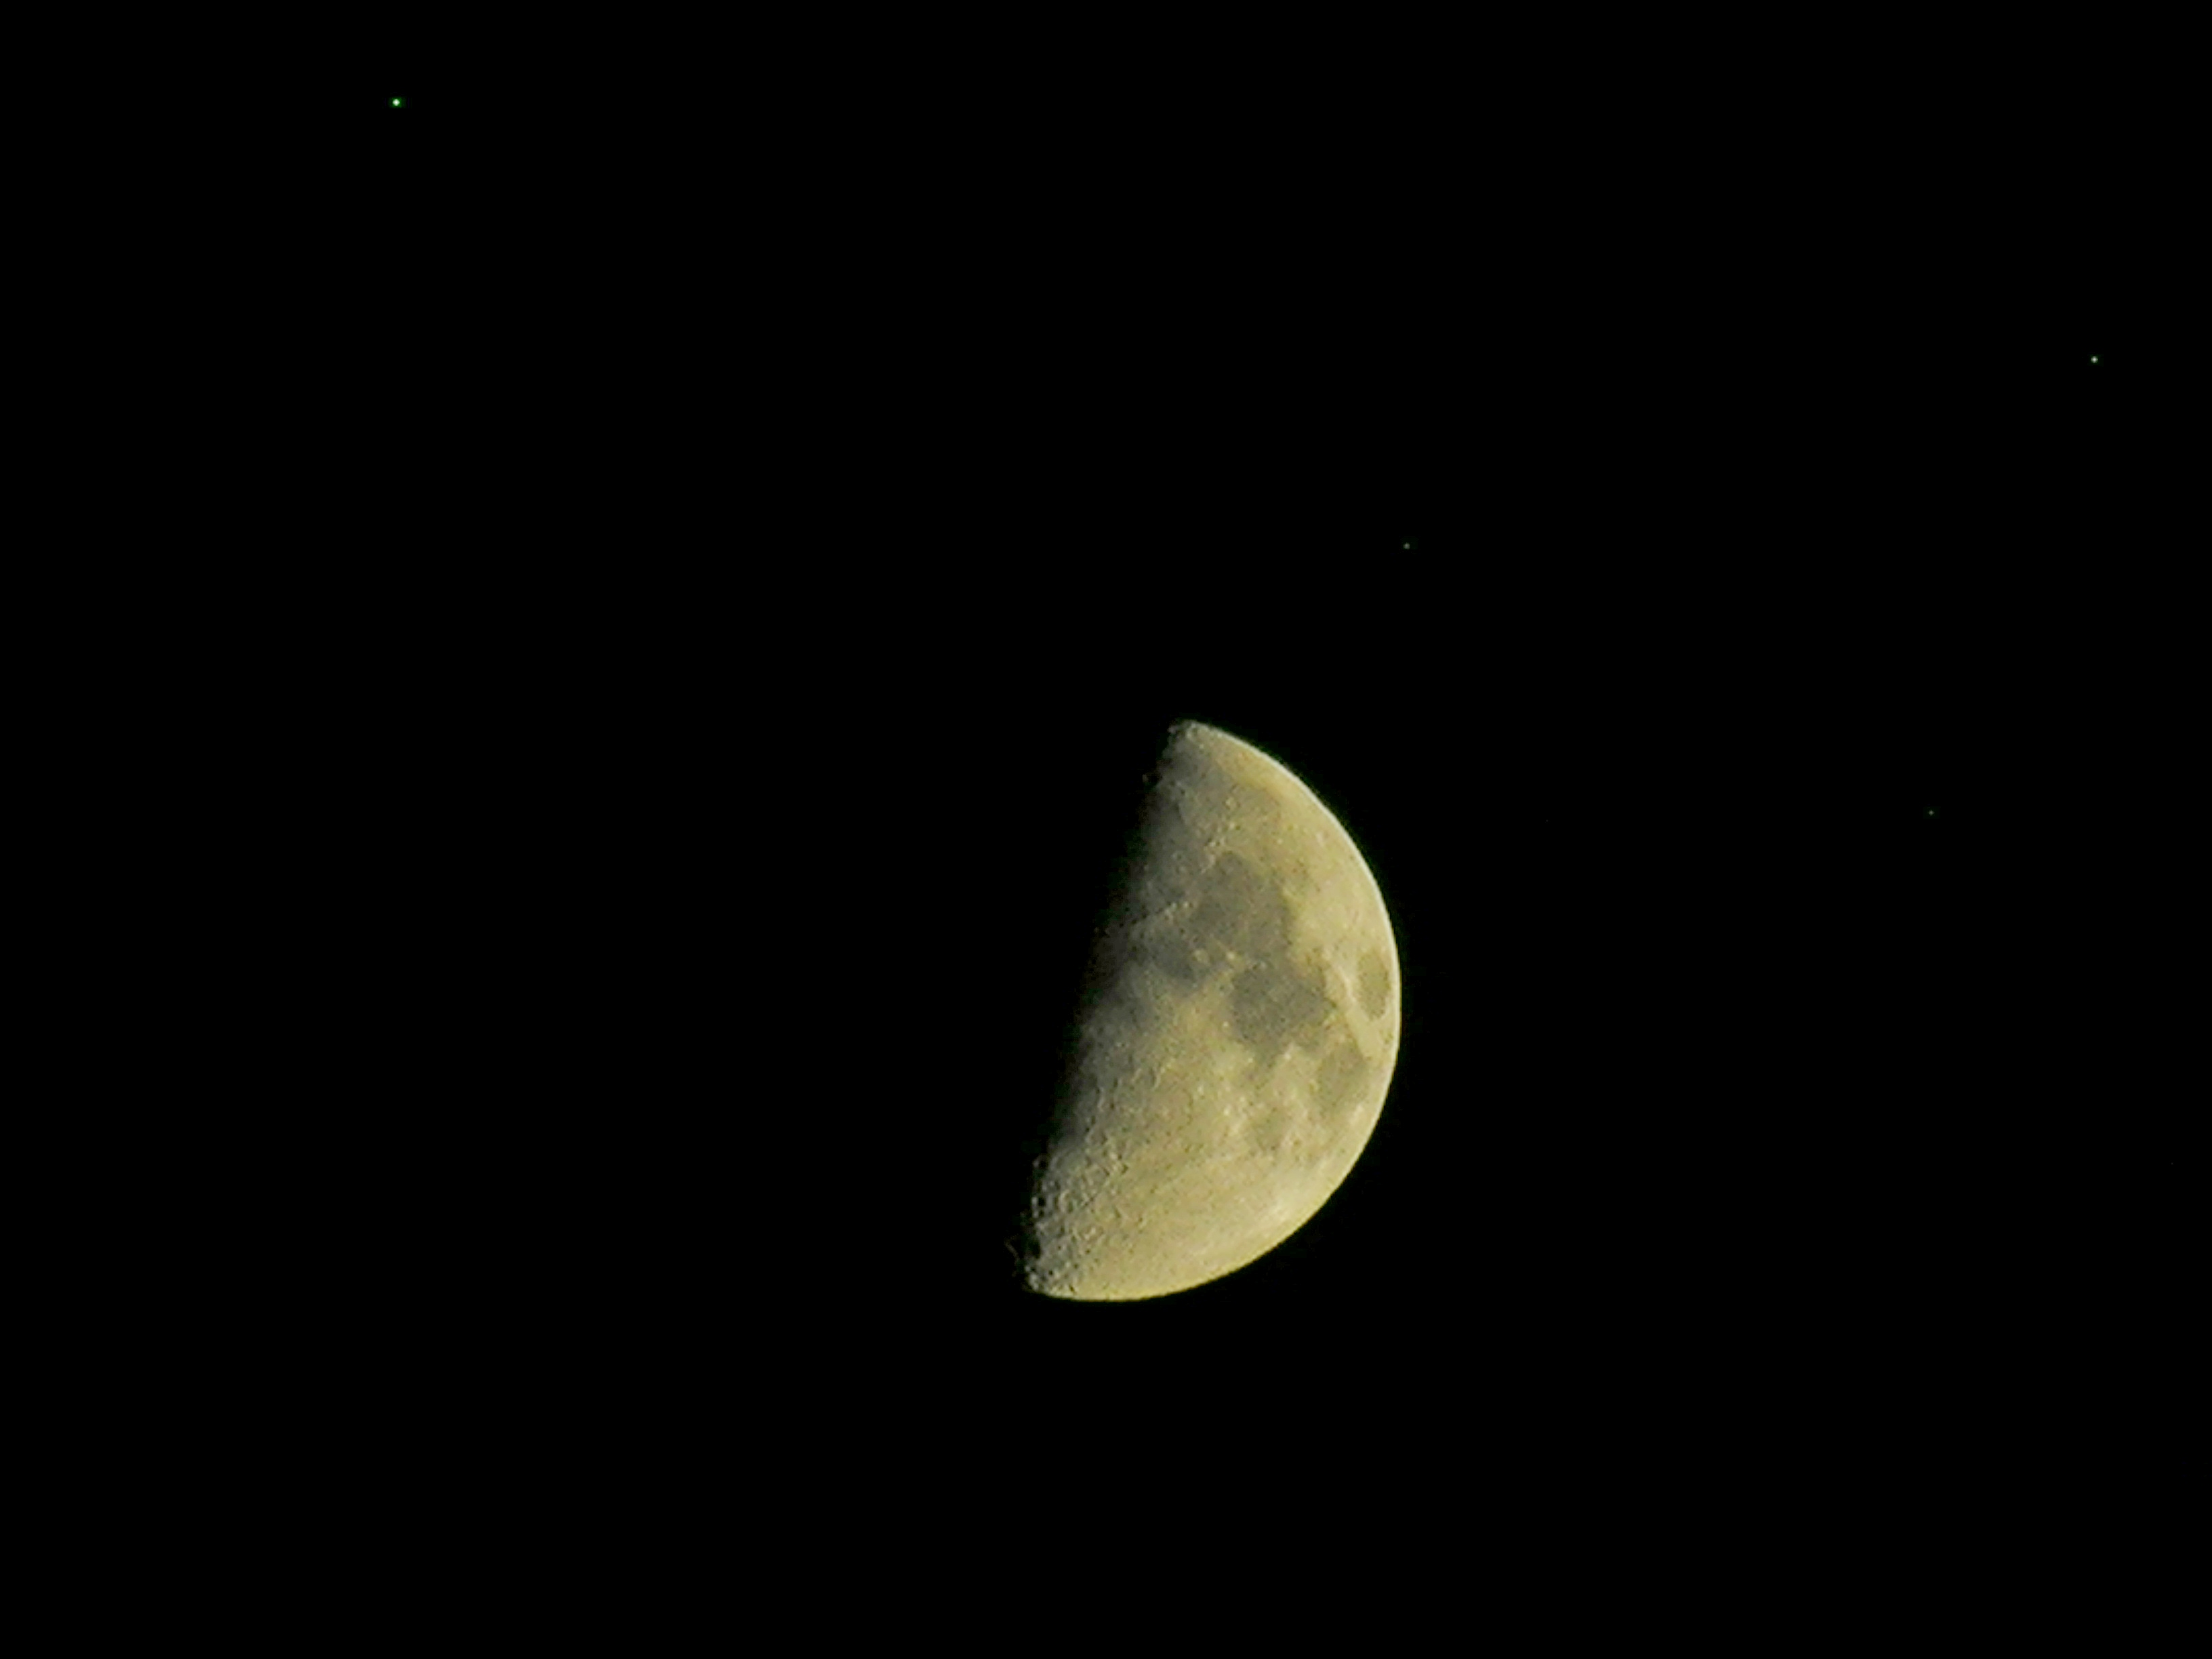 moon mars conjunction what time - photo #4